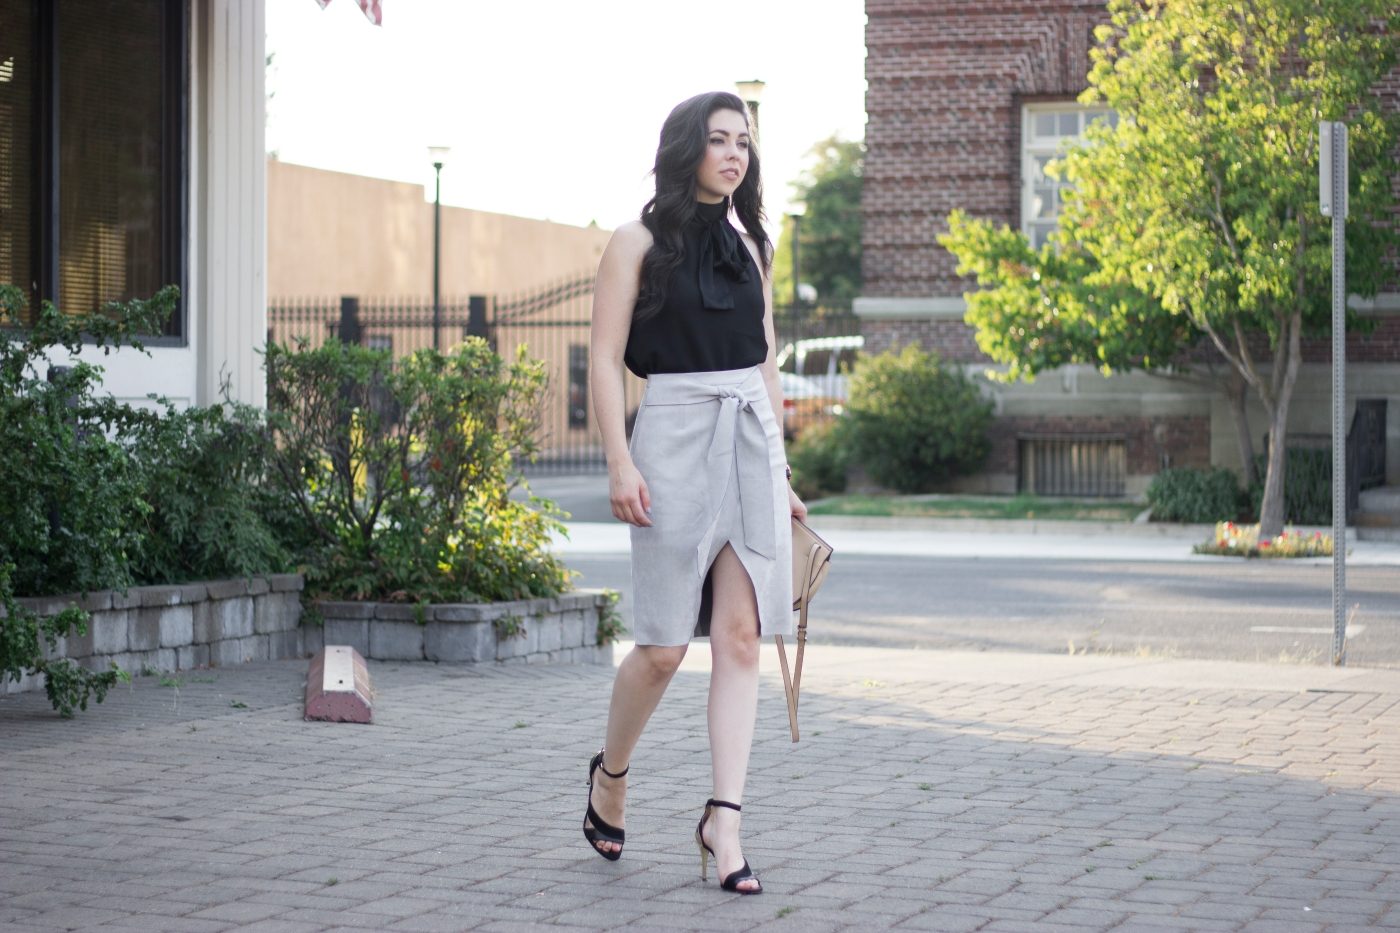 fashion blogger posing in a city, wearing a suede skirt, zara heels, and daniel wellington watch.